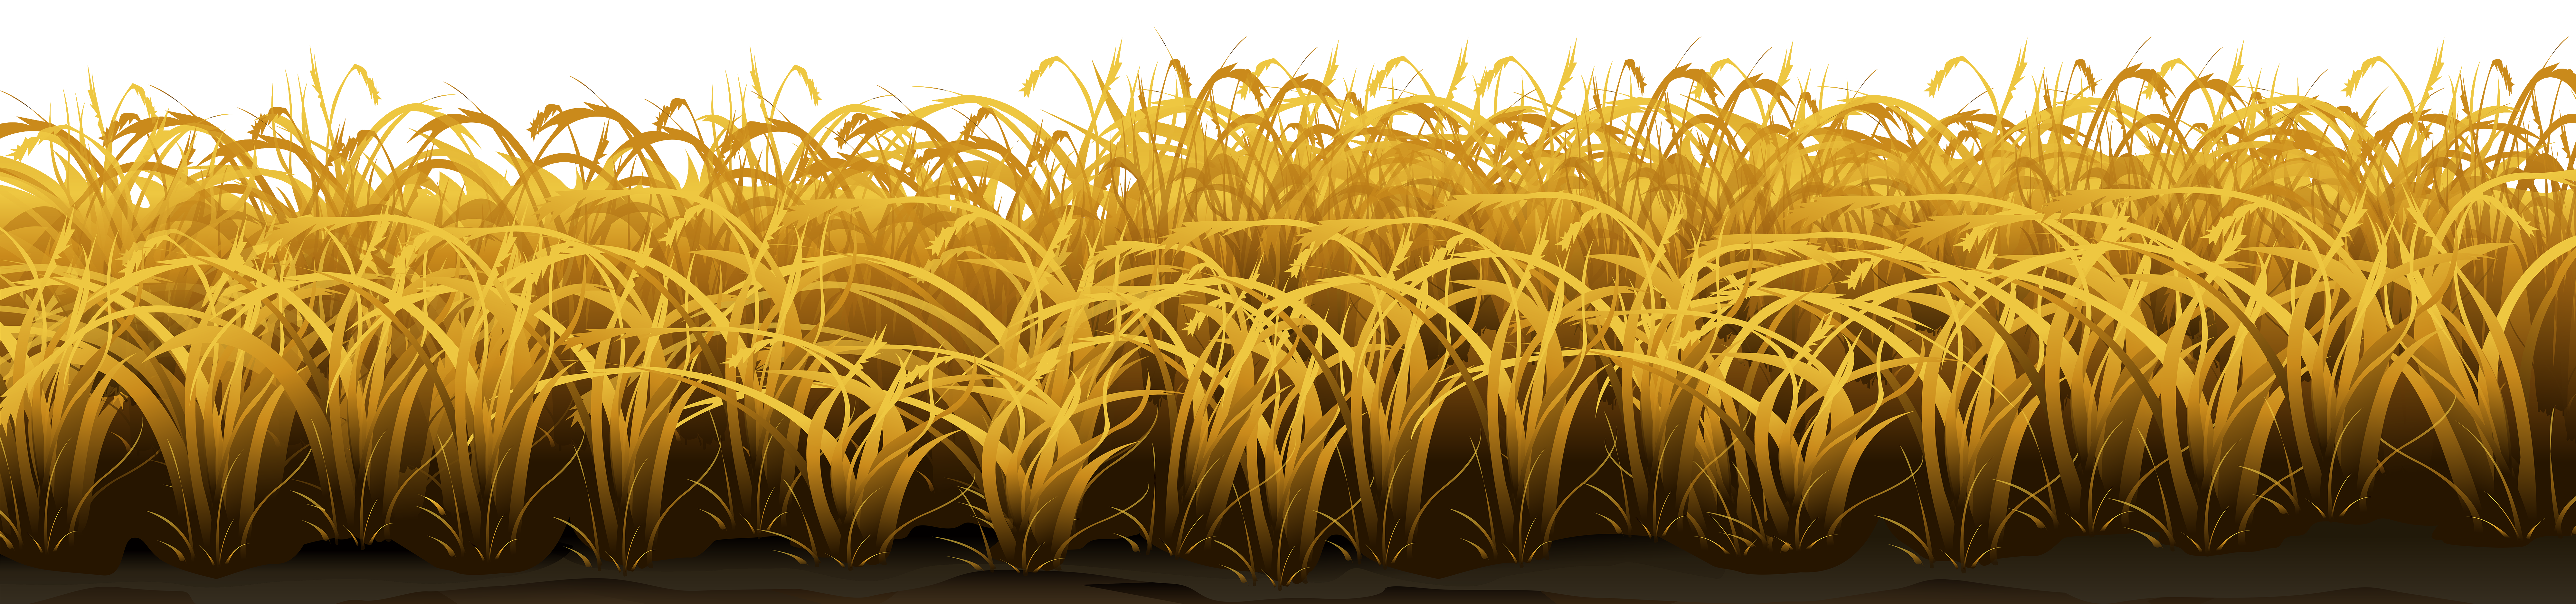 Wheat clipart cute. Field wallpapers photo category